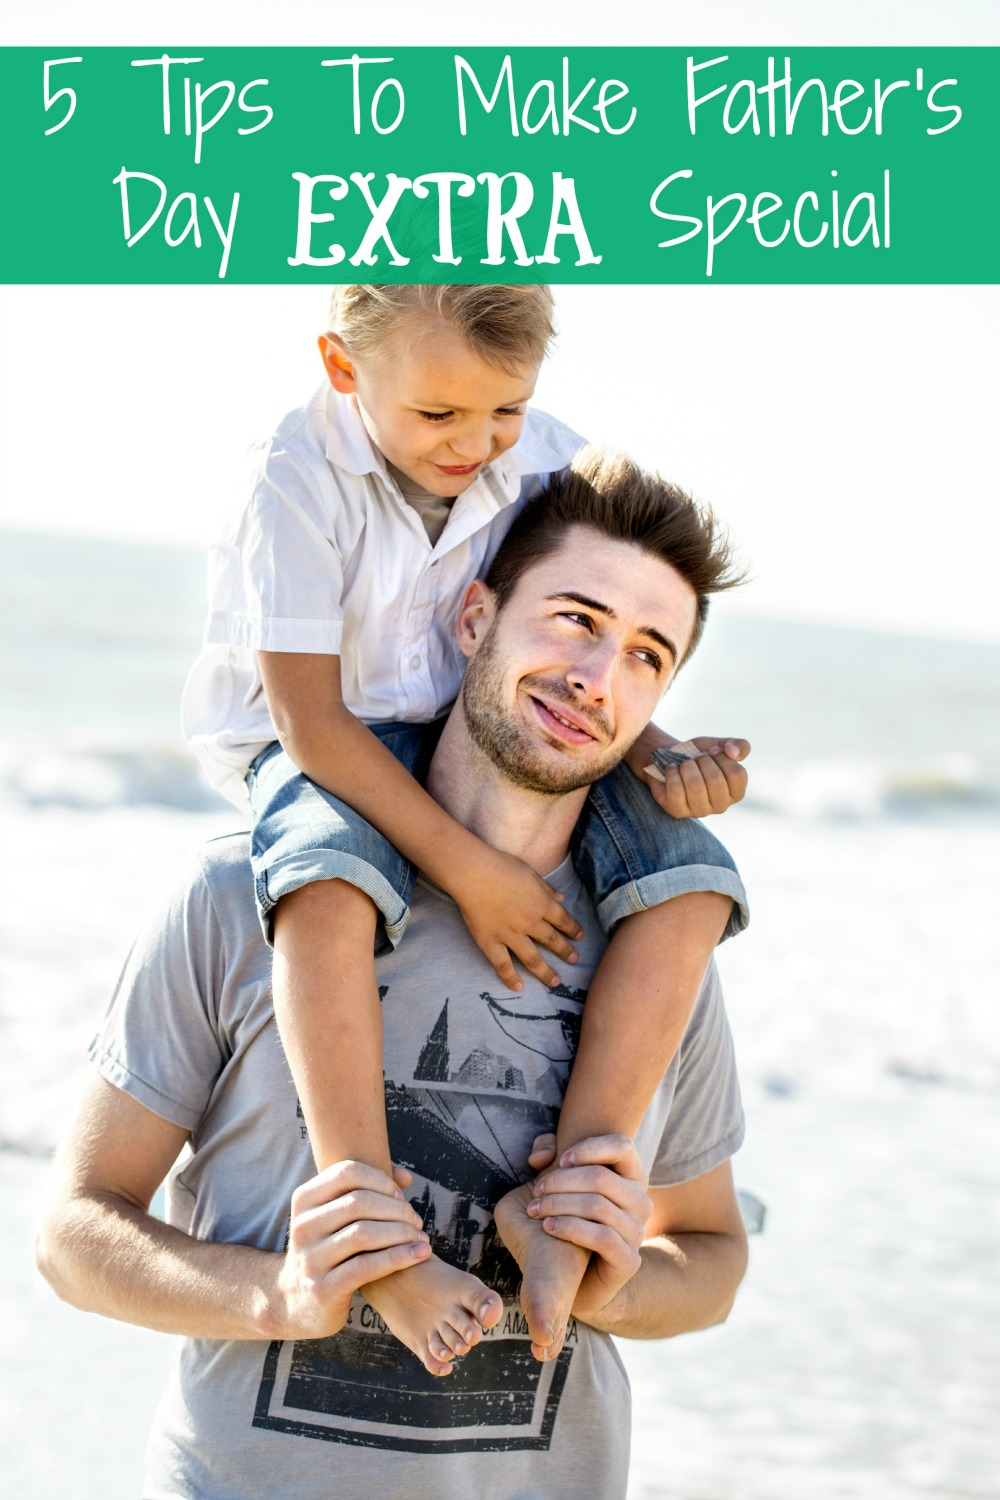 5 Tips to Make Father's Day Extra Special Every Year - simplytodaylife.com